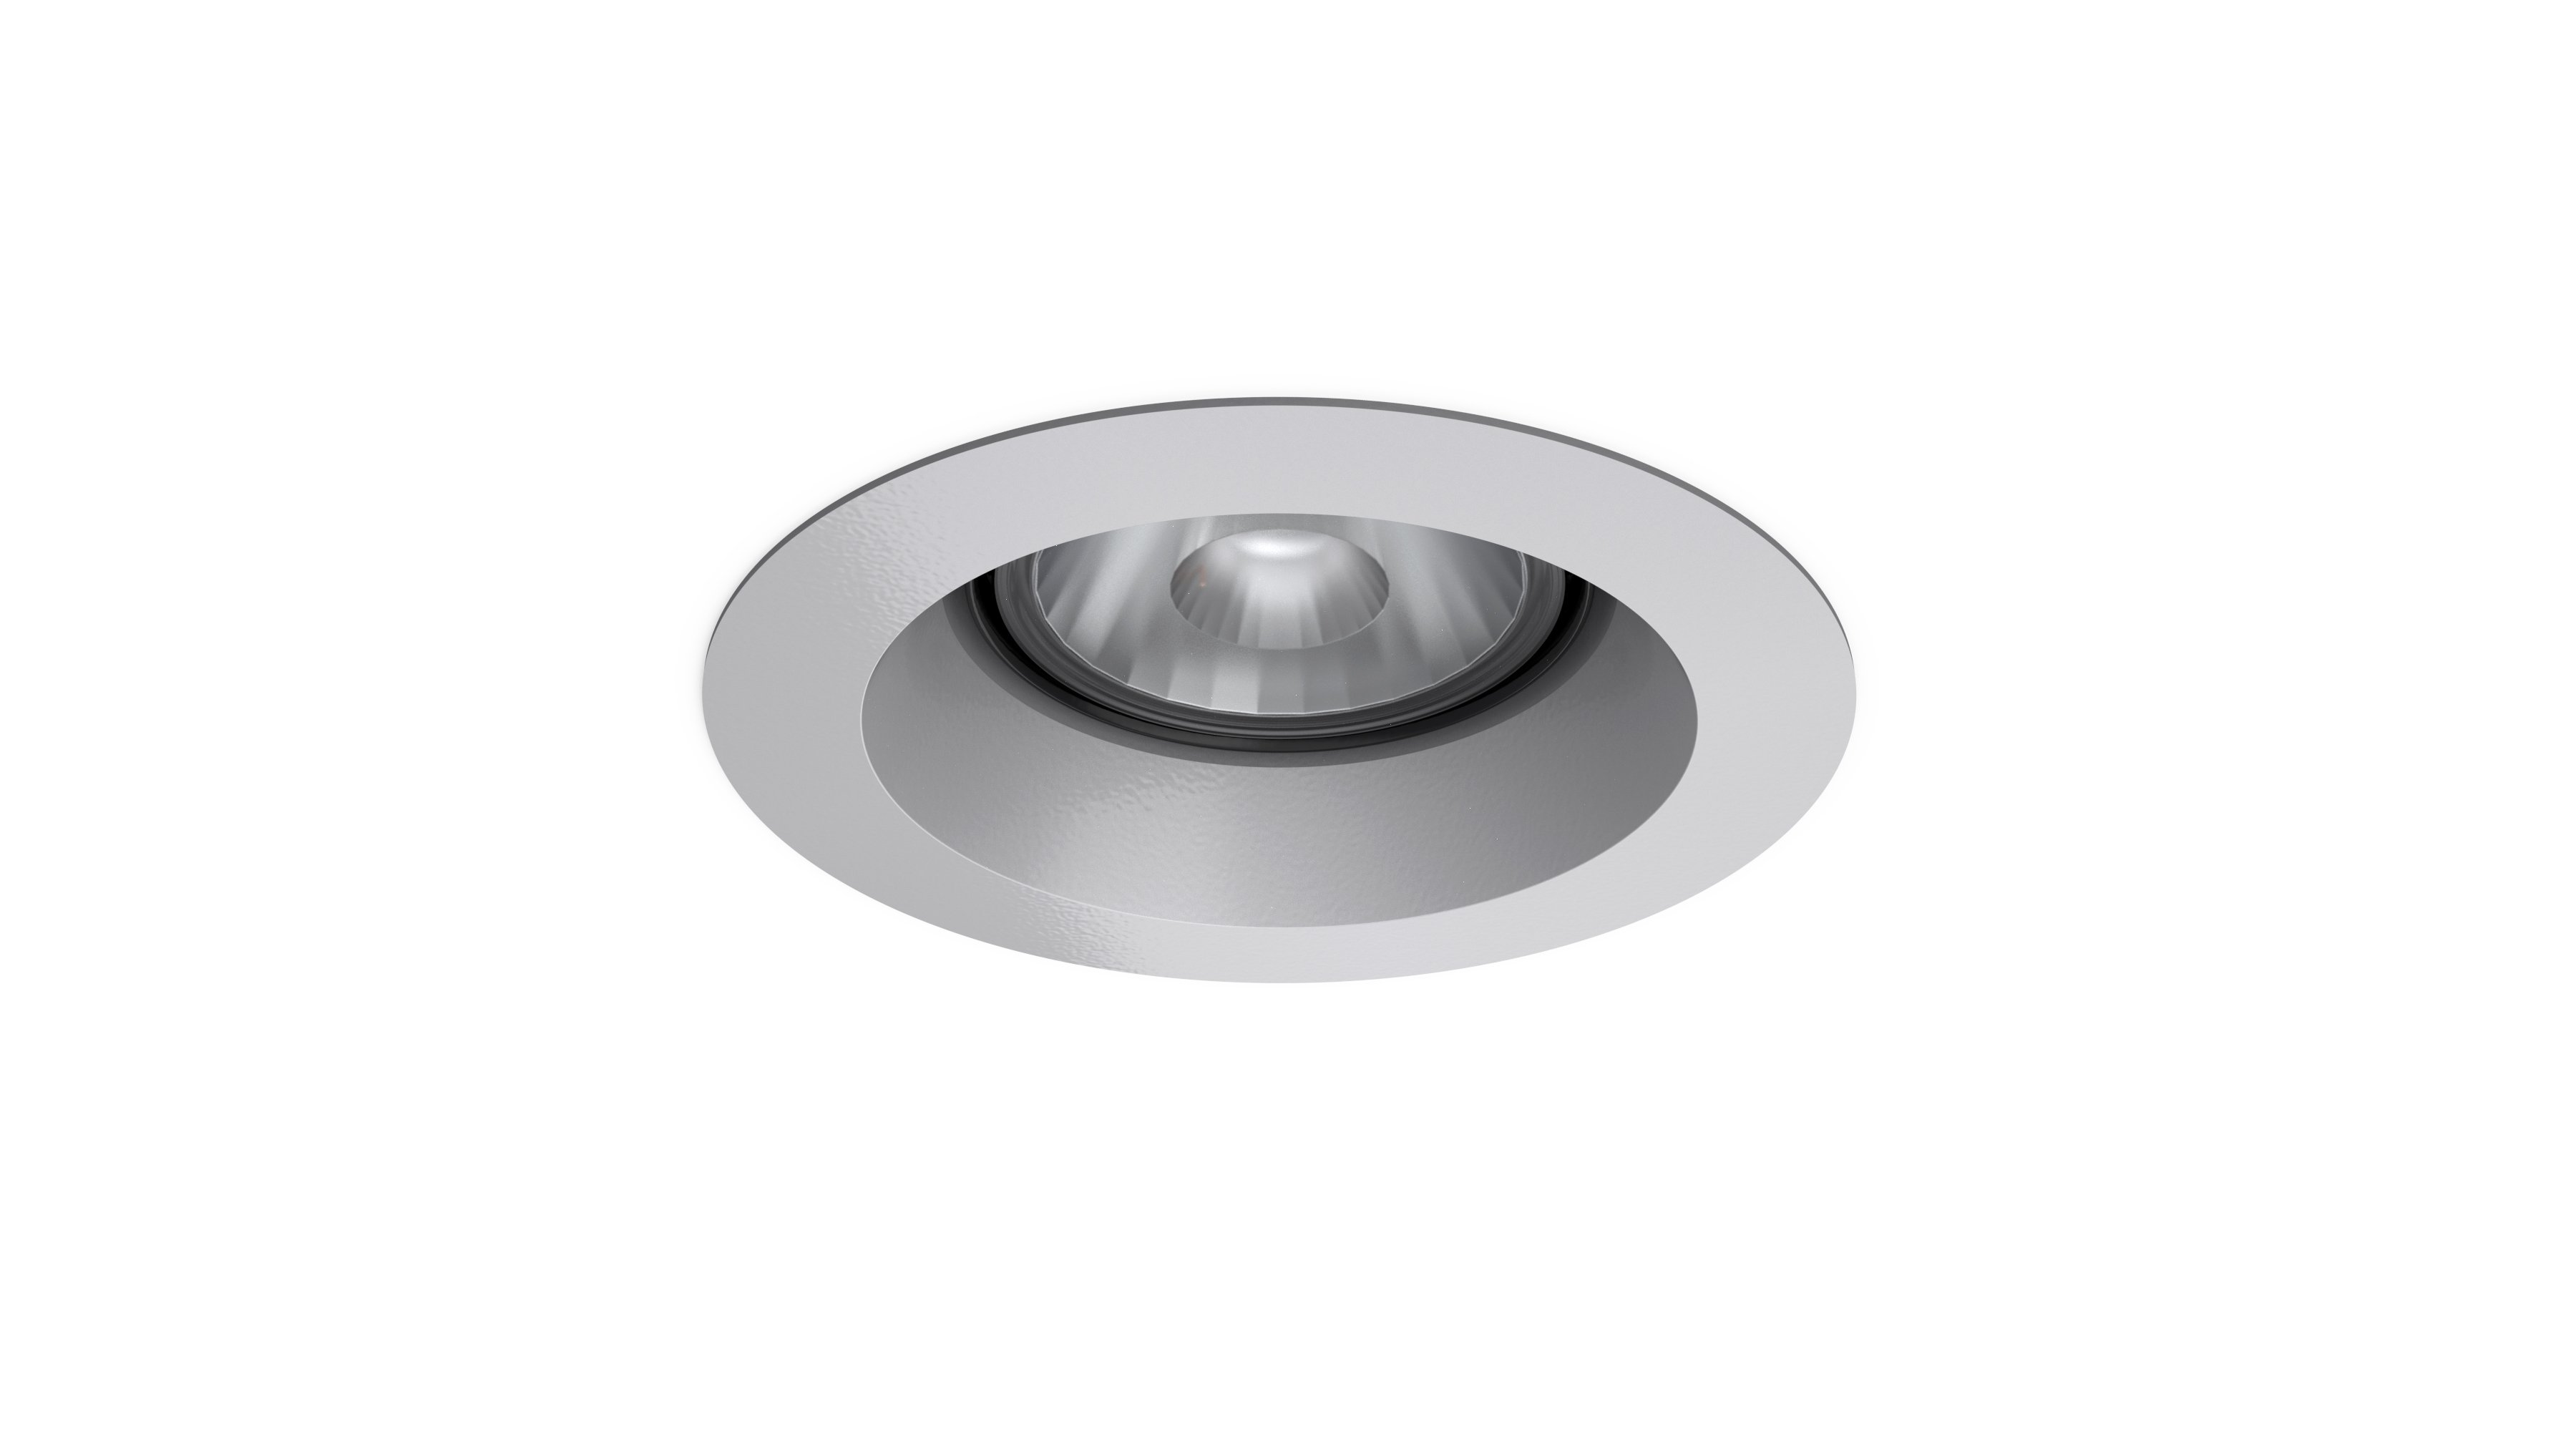 S30 Halo Downlight_InSitu_Perspective_Silver (B)